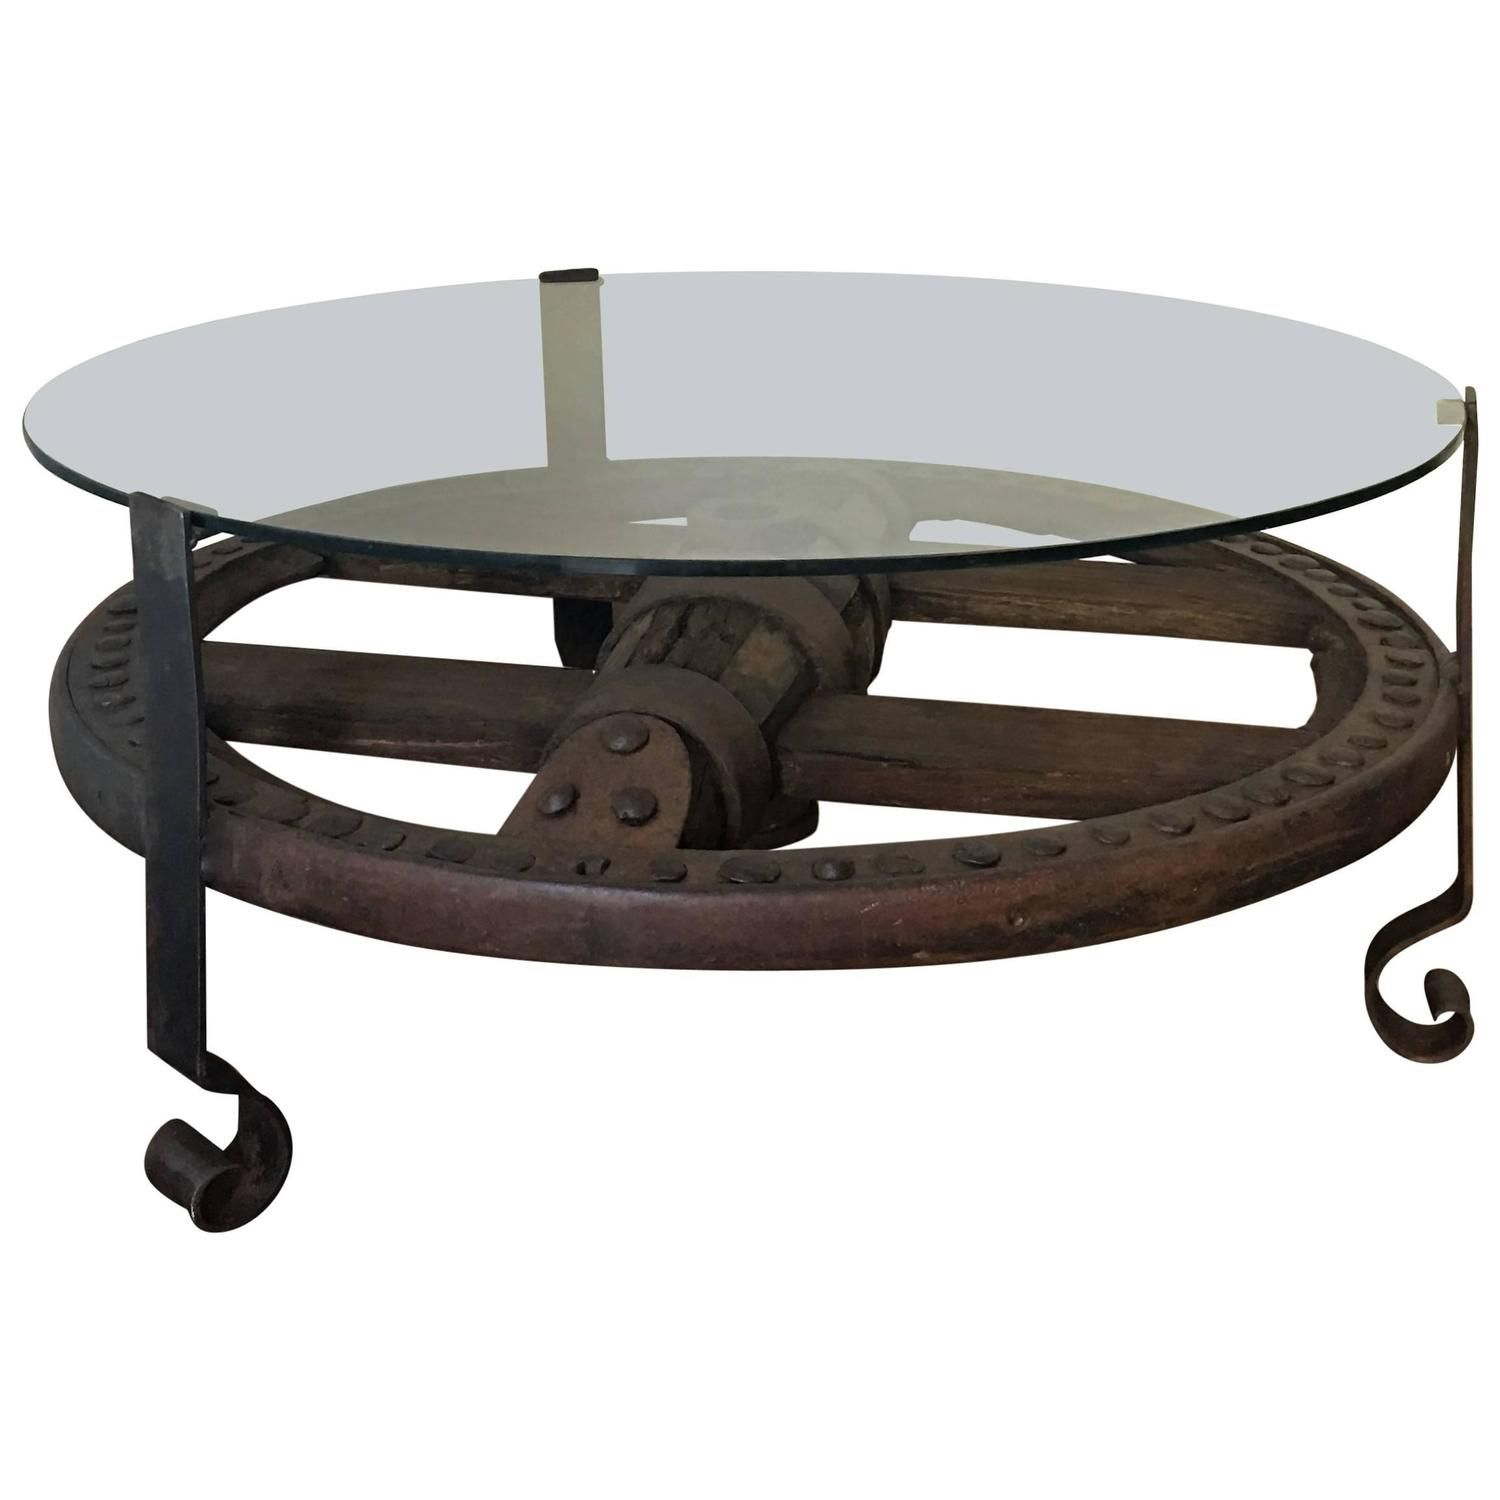 Center Table With Wheels